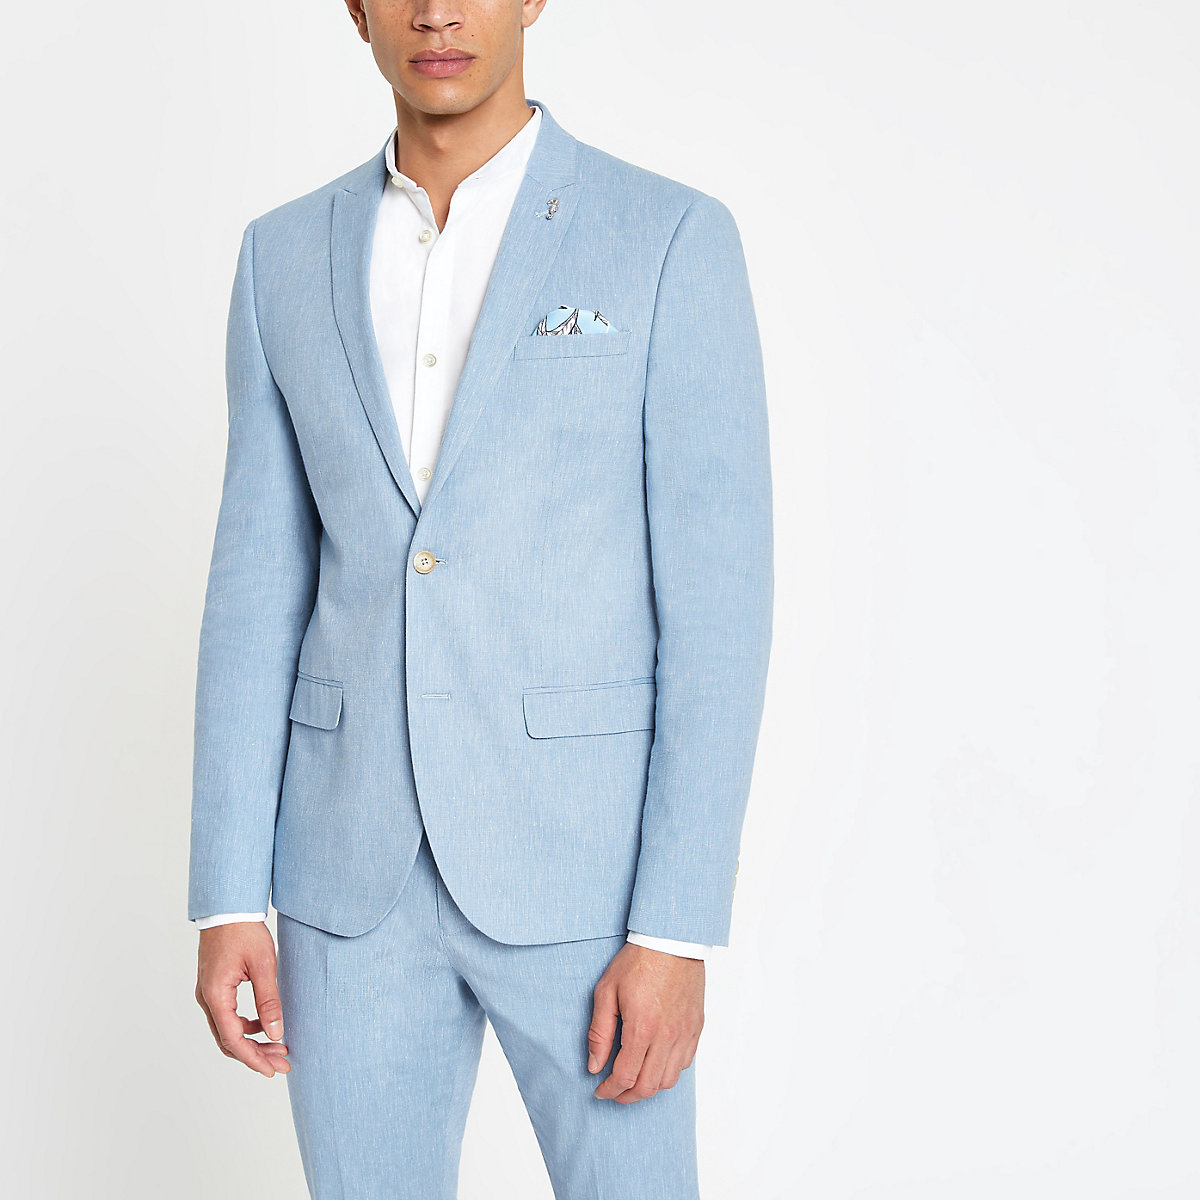 Light blue skinny fit suit jacket with linen